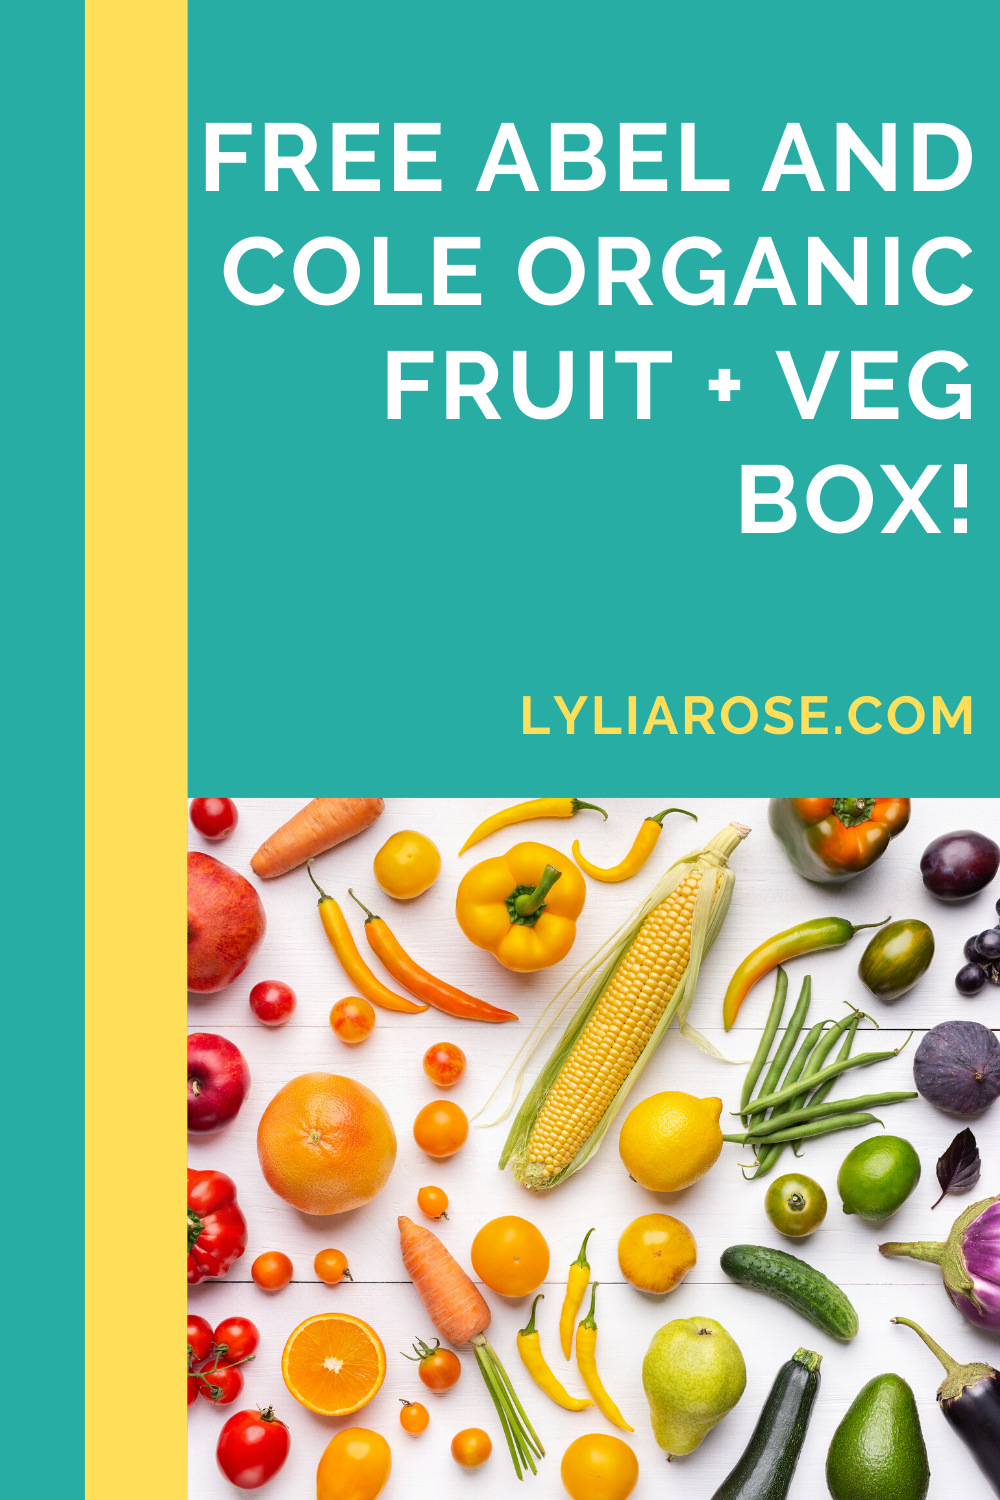 Get a Free Abel And Cole Organic Fruit + Veg Box!